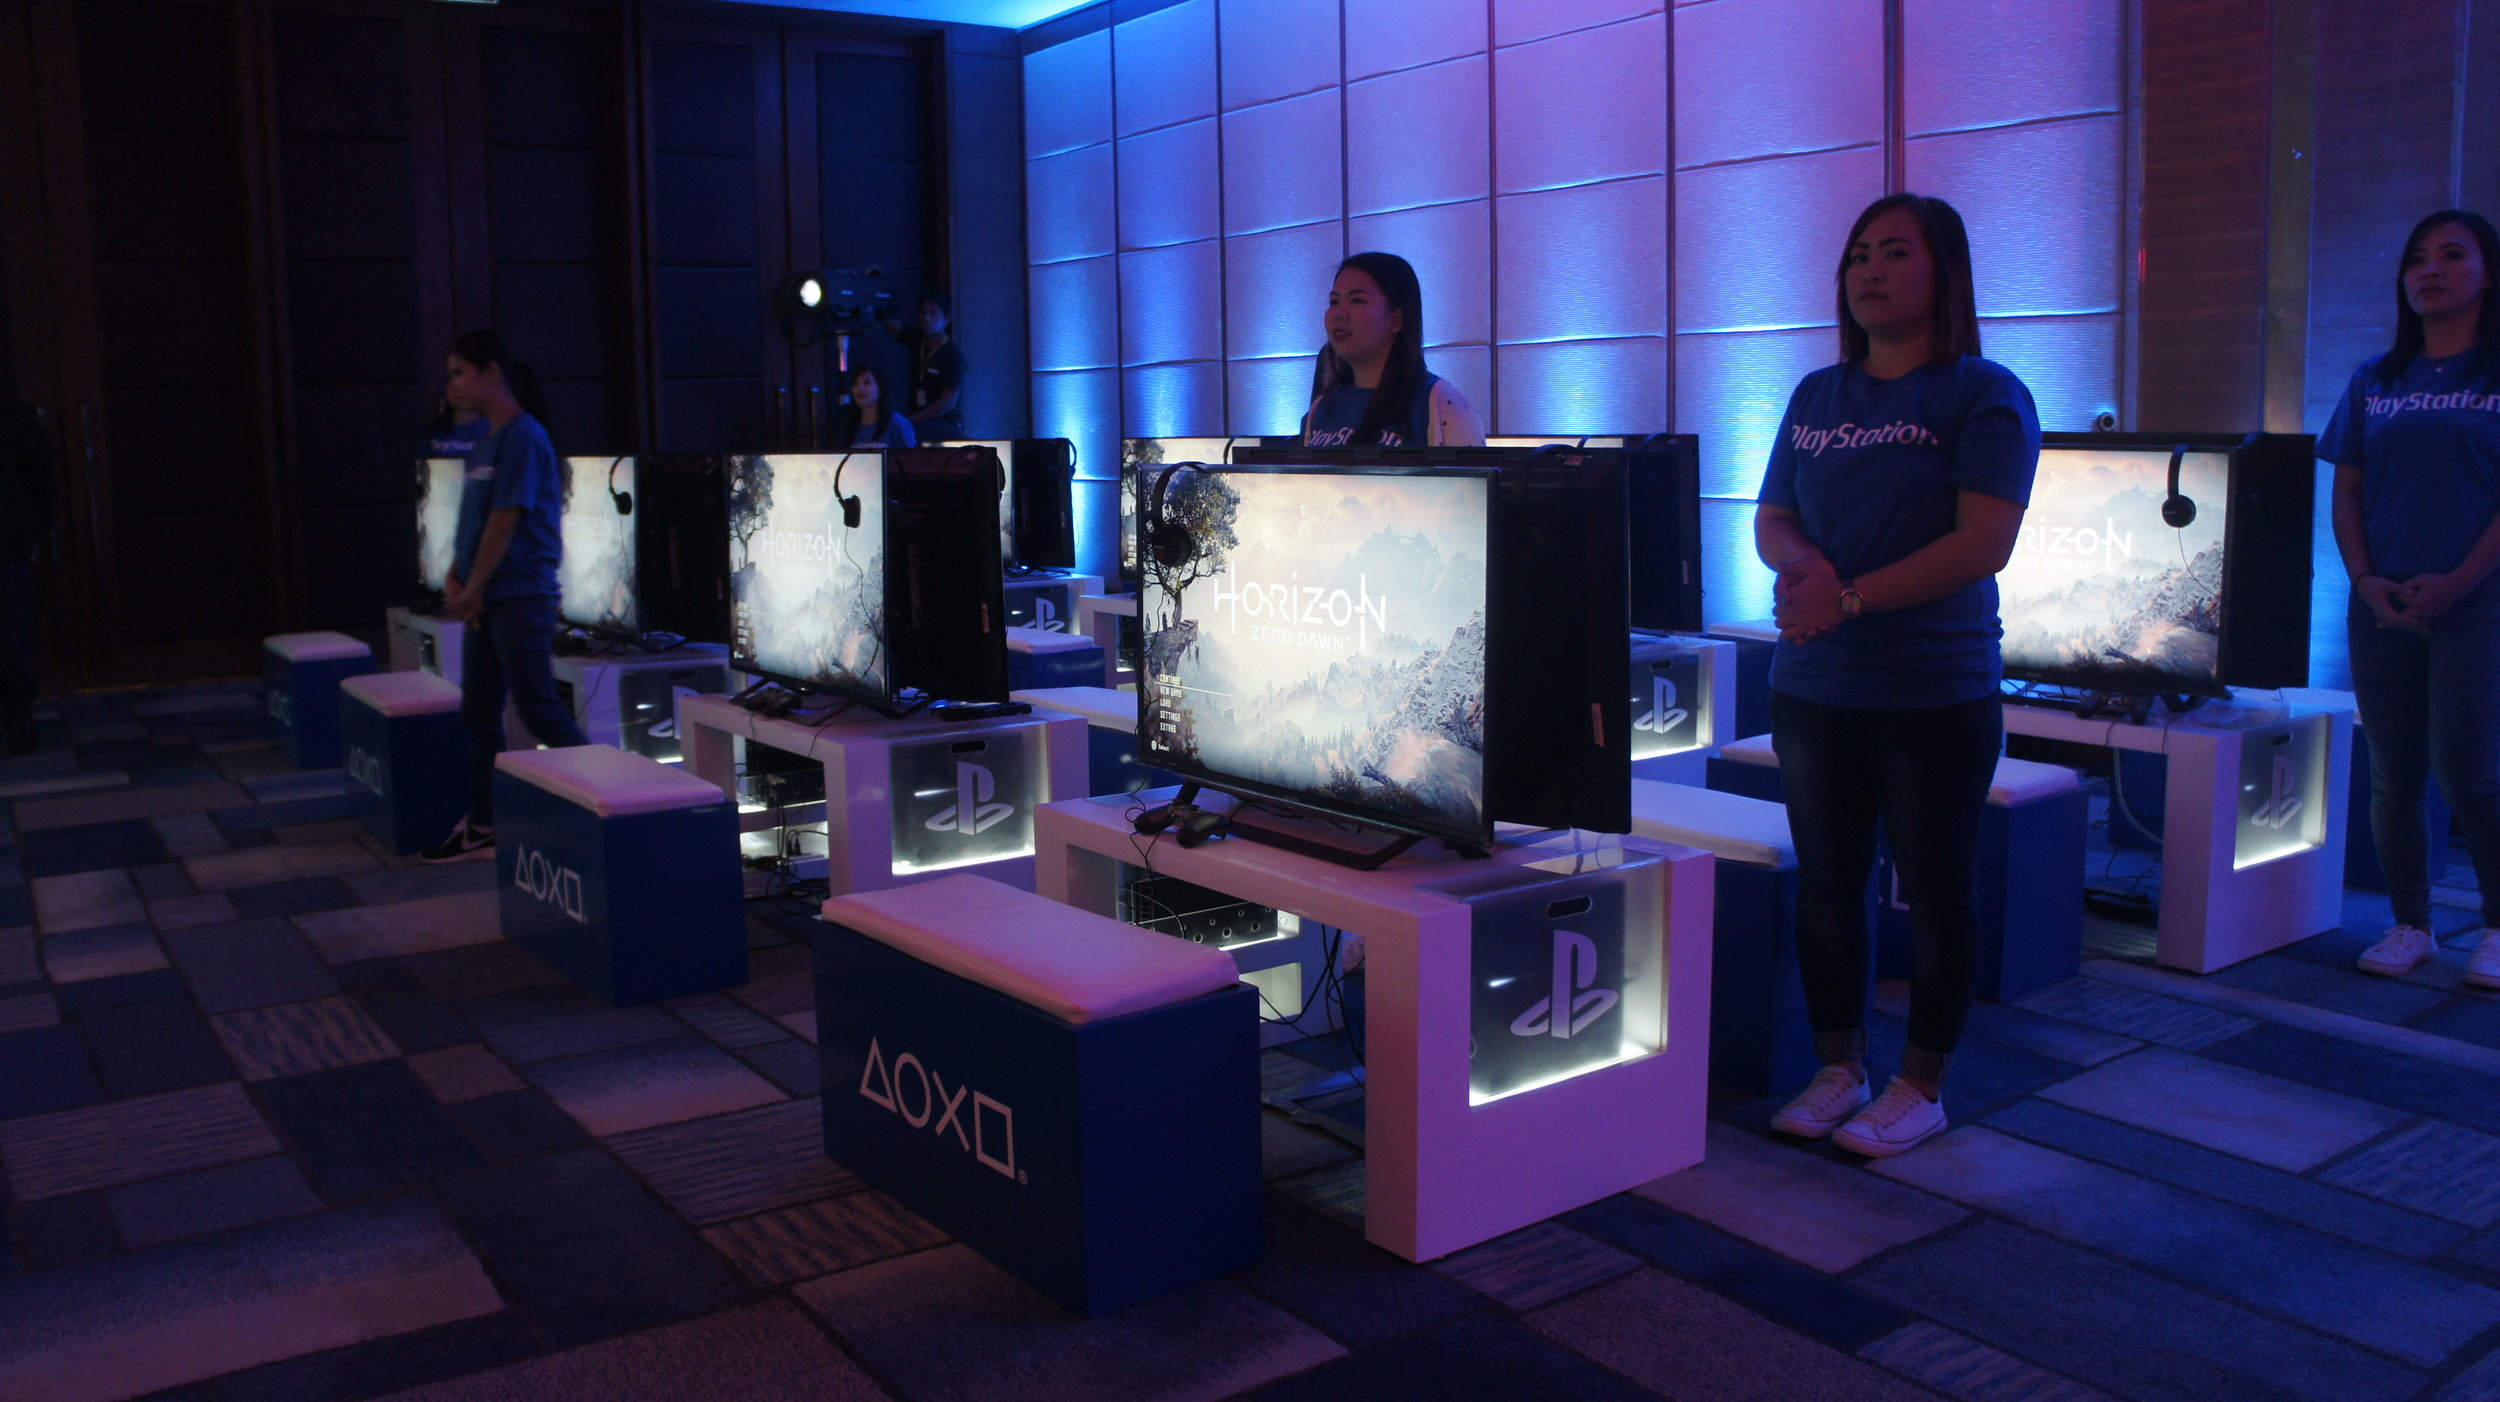 During the event, each station was using a standard PS4 unit to run Horizon Zero Dawn